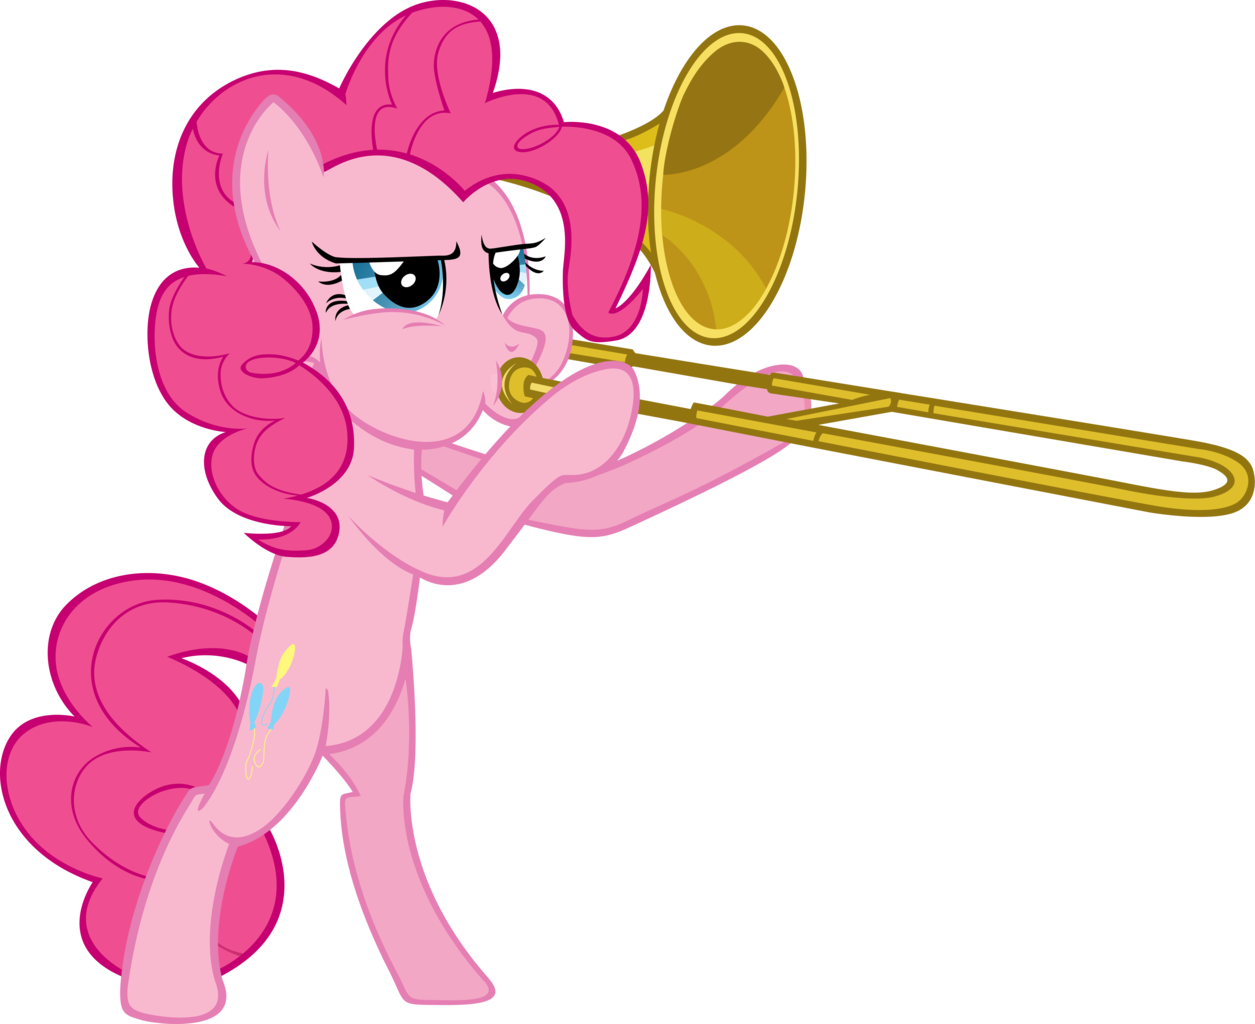 Trombone vector transparent. Artist spaceponies pinkie